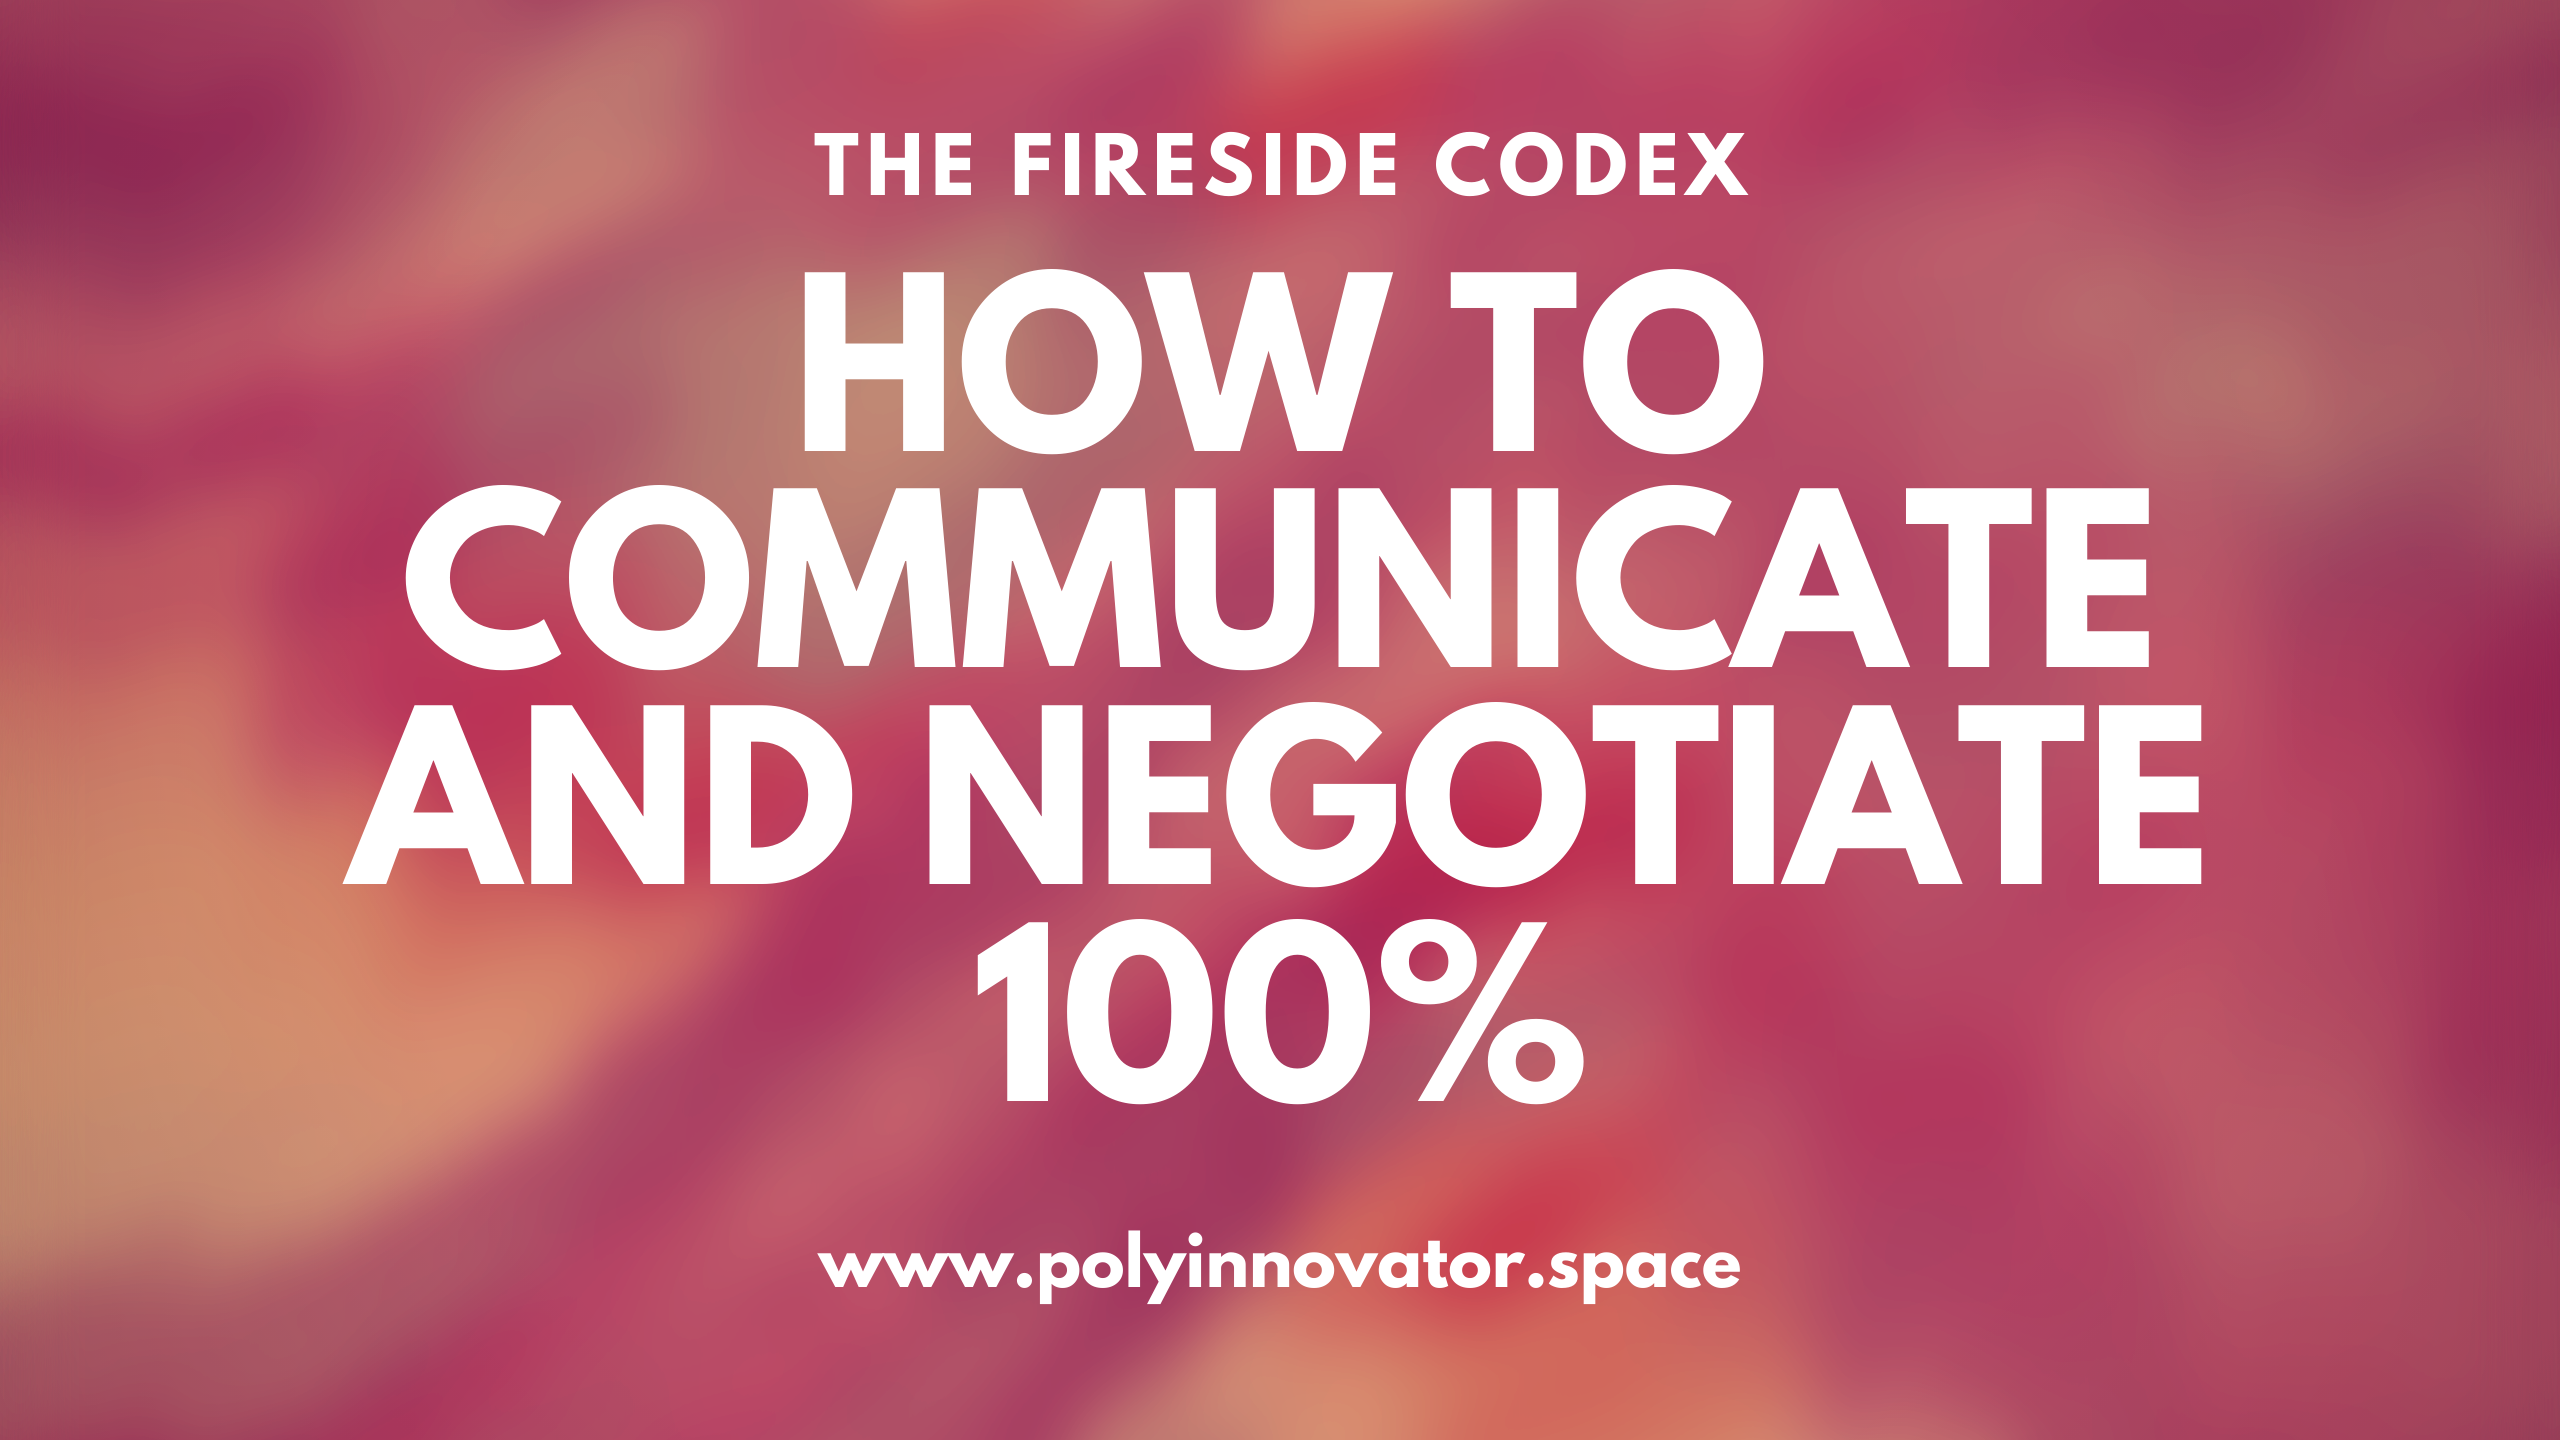 How to Communicate and Negotiate 100%